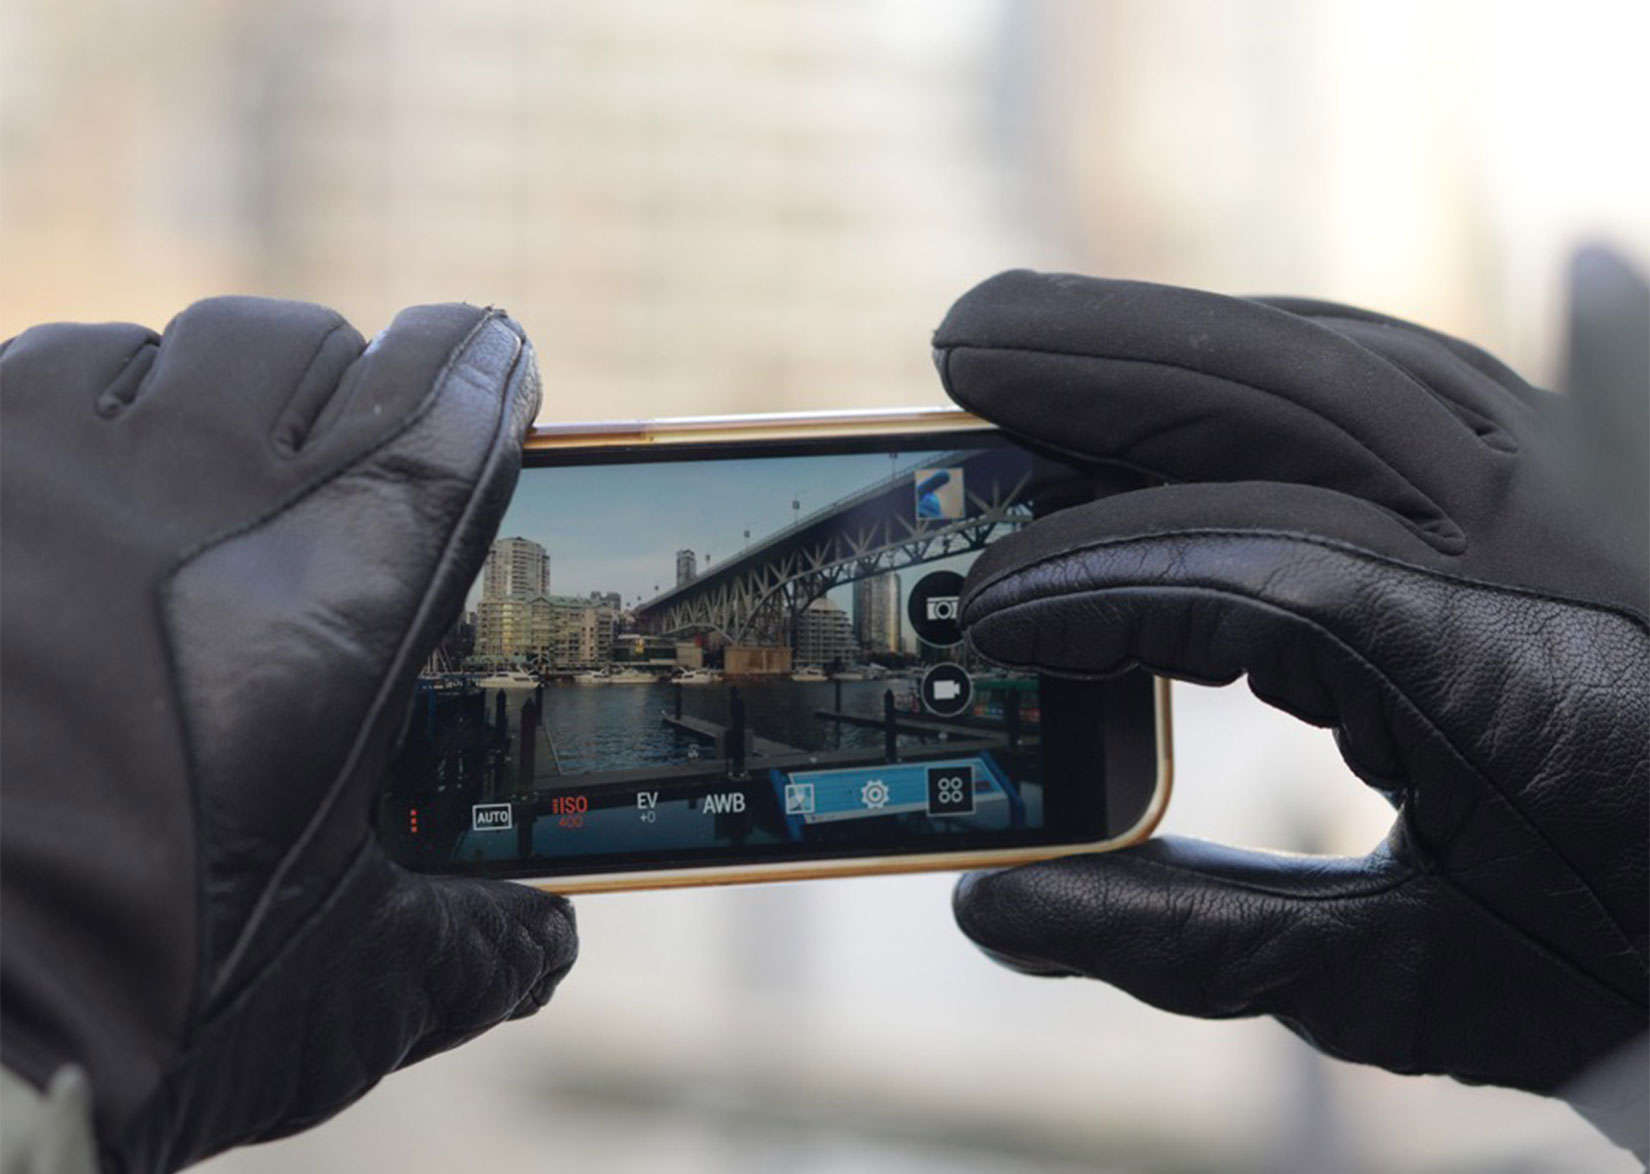 Nanotips will let you use your touchscreens in cold weather without having to remove your gloves.